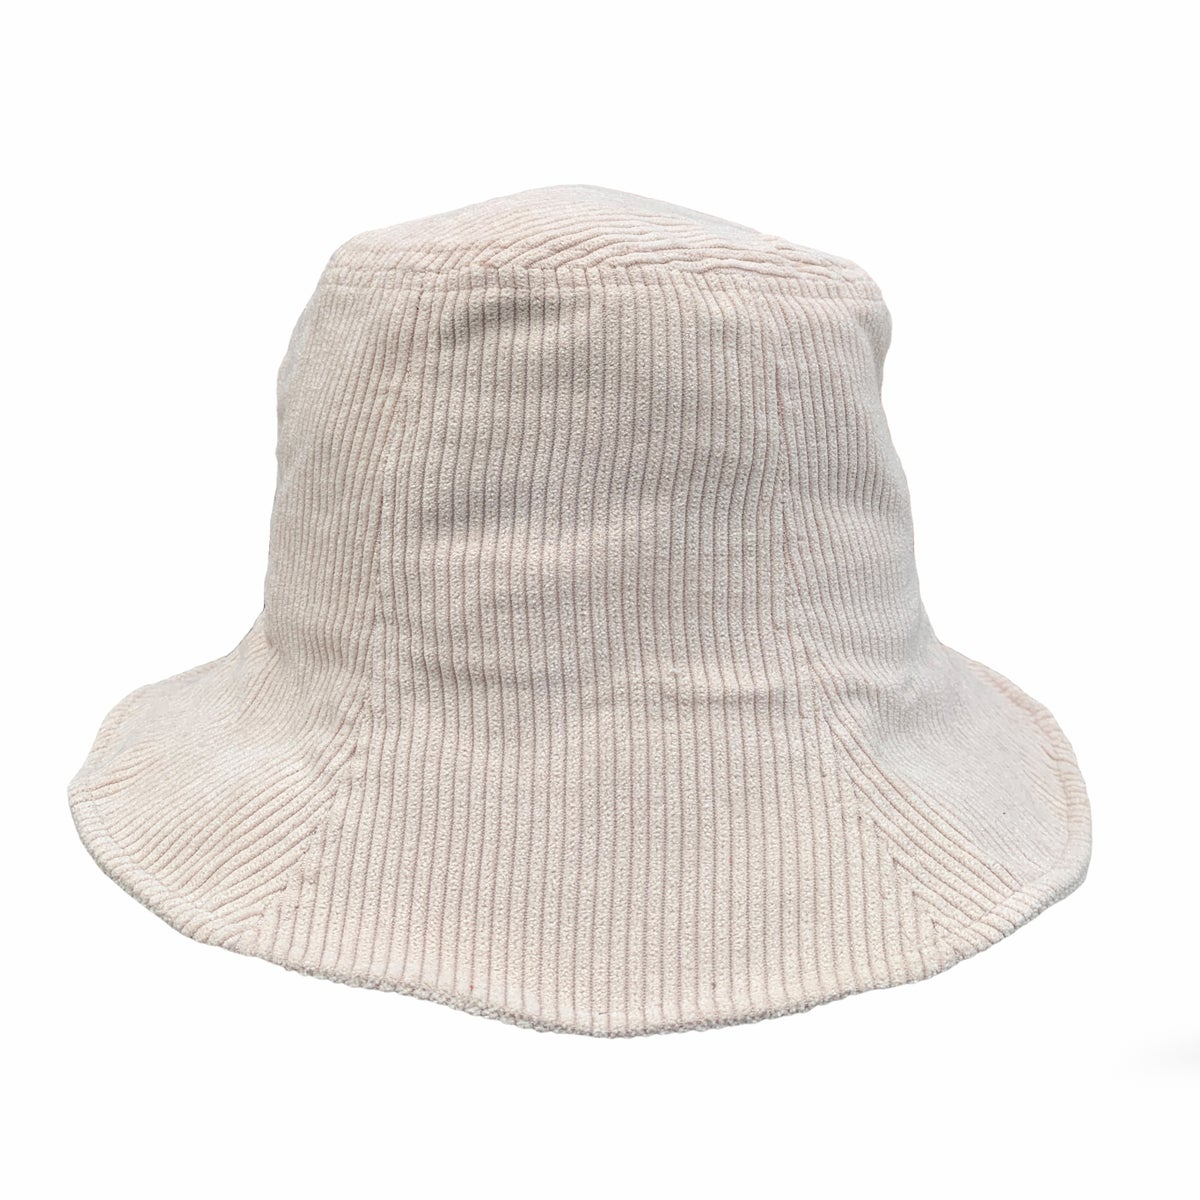 Image of Corduroy Bucket Hat.  Beige.(was £23 now £18.40)